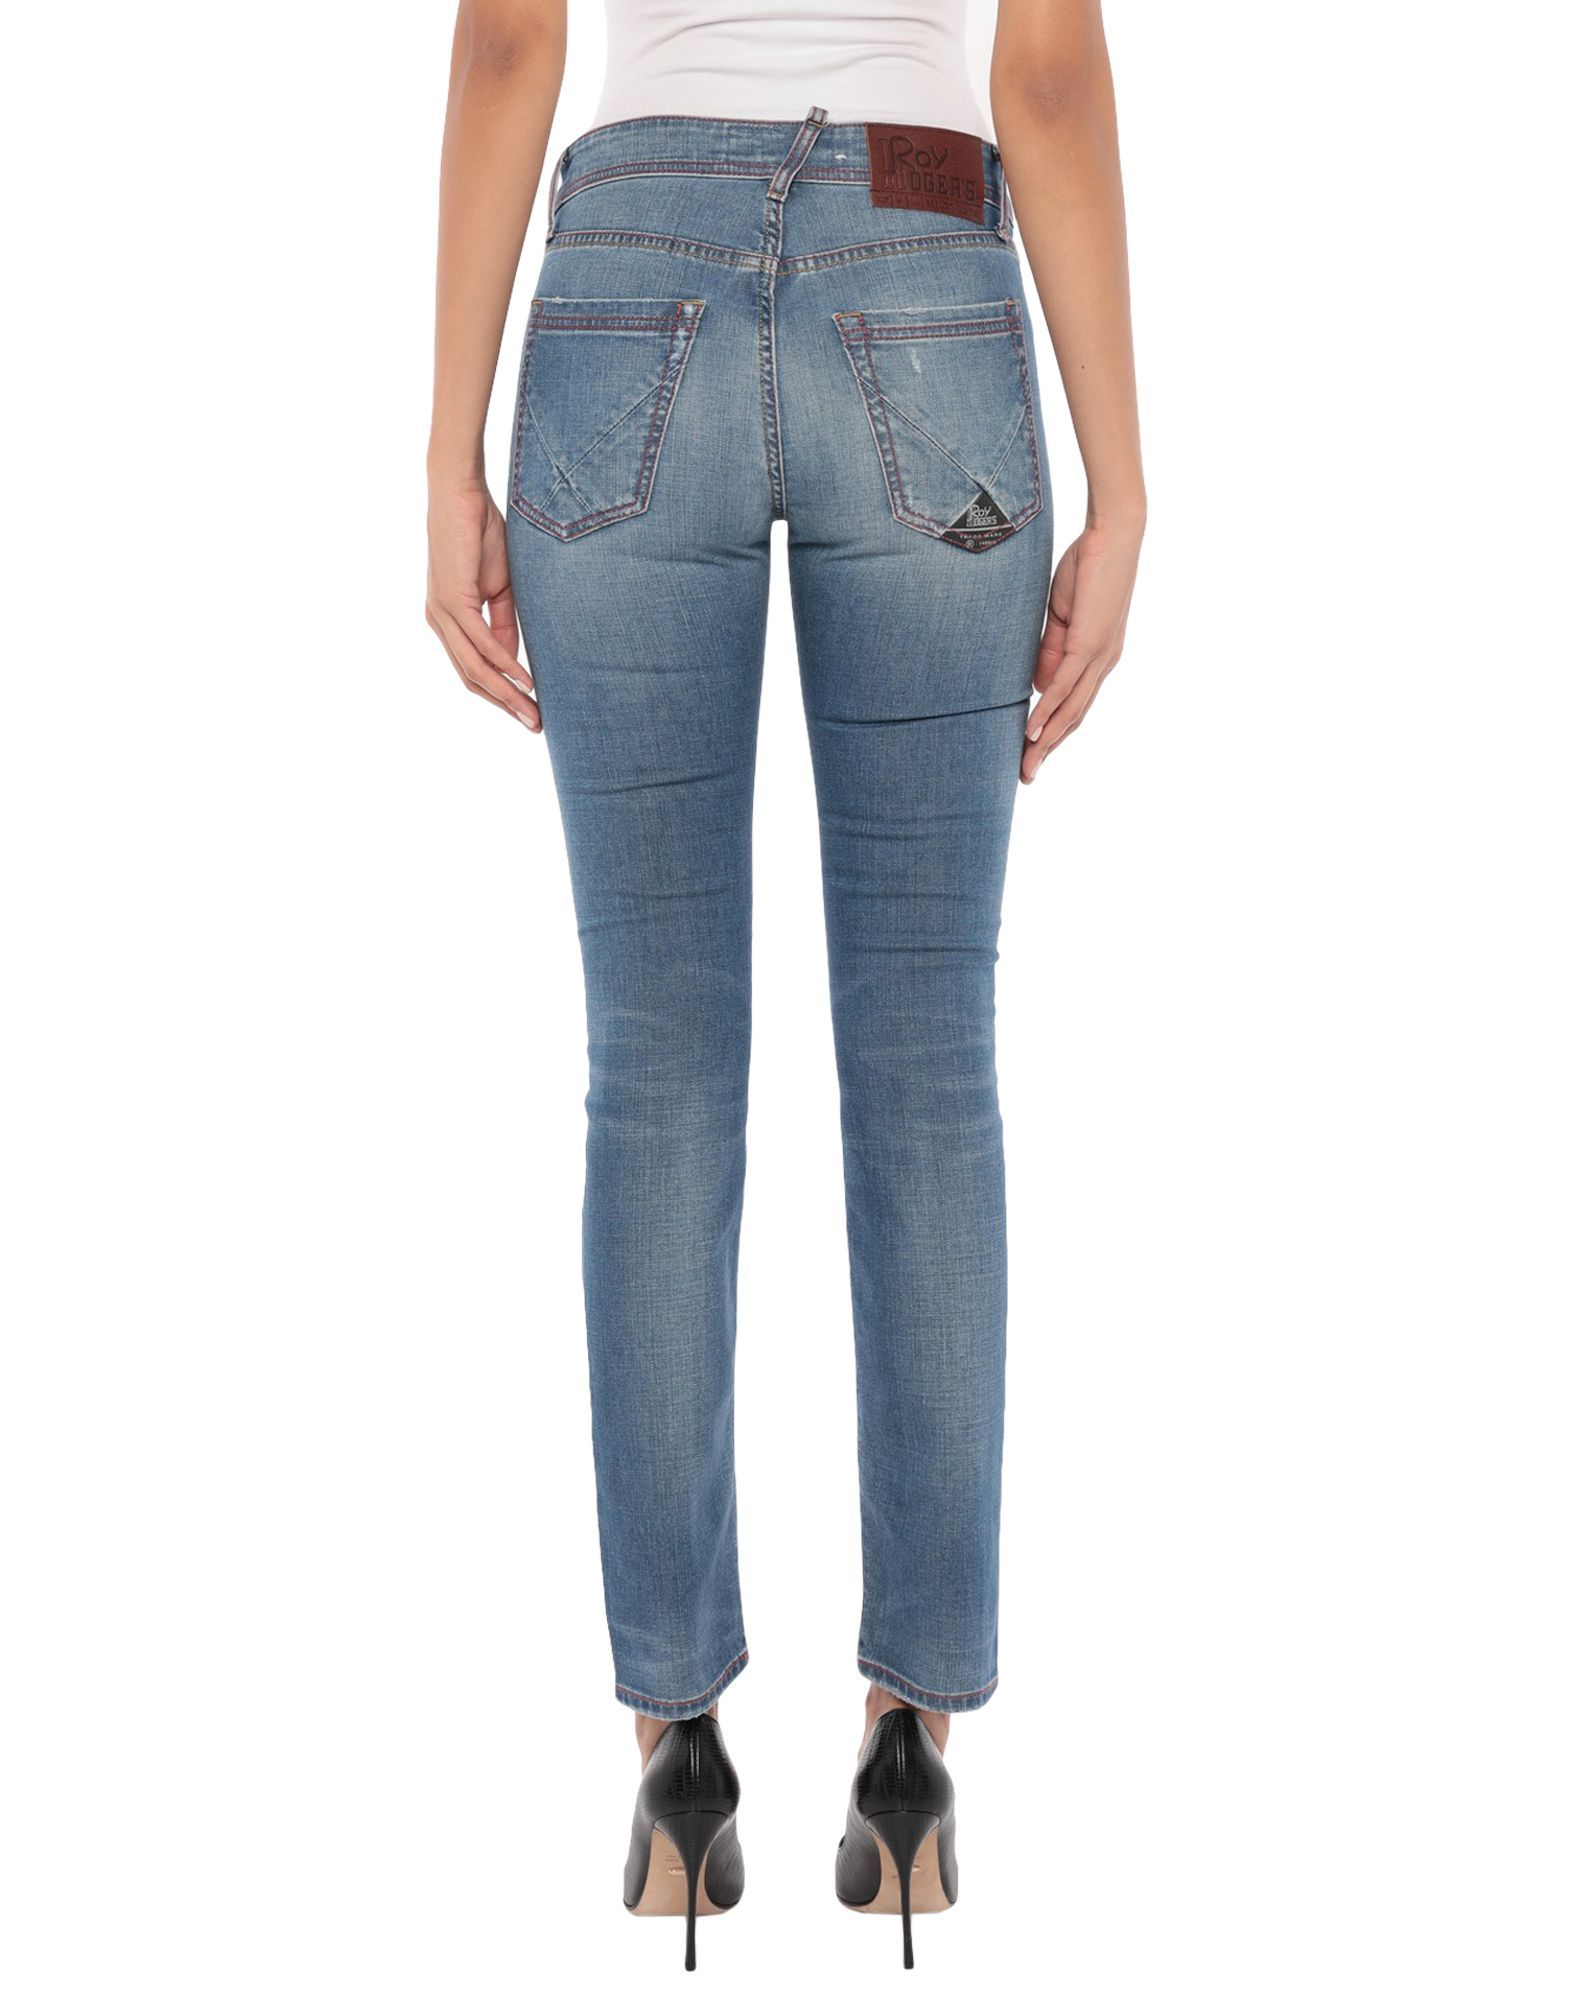 Roÿ Roger's Blue Cotton Mid Rise Jeans